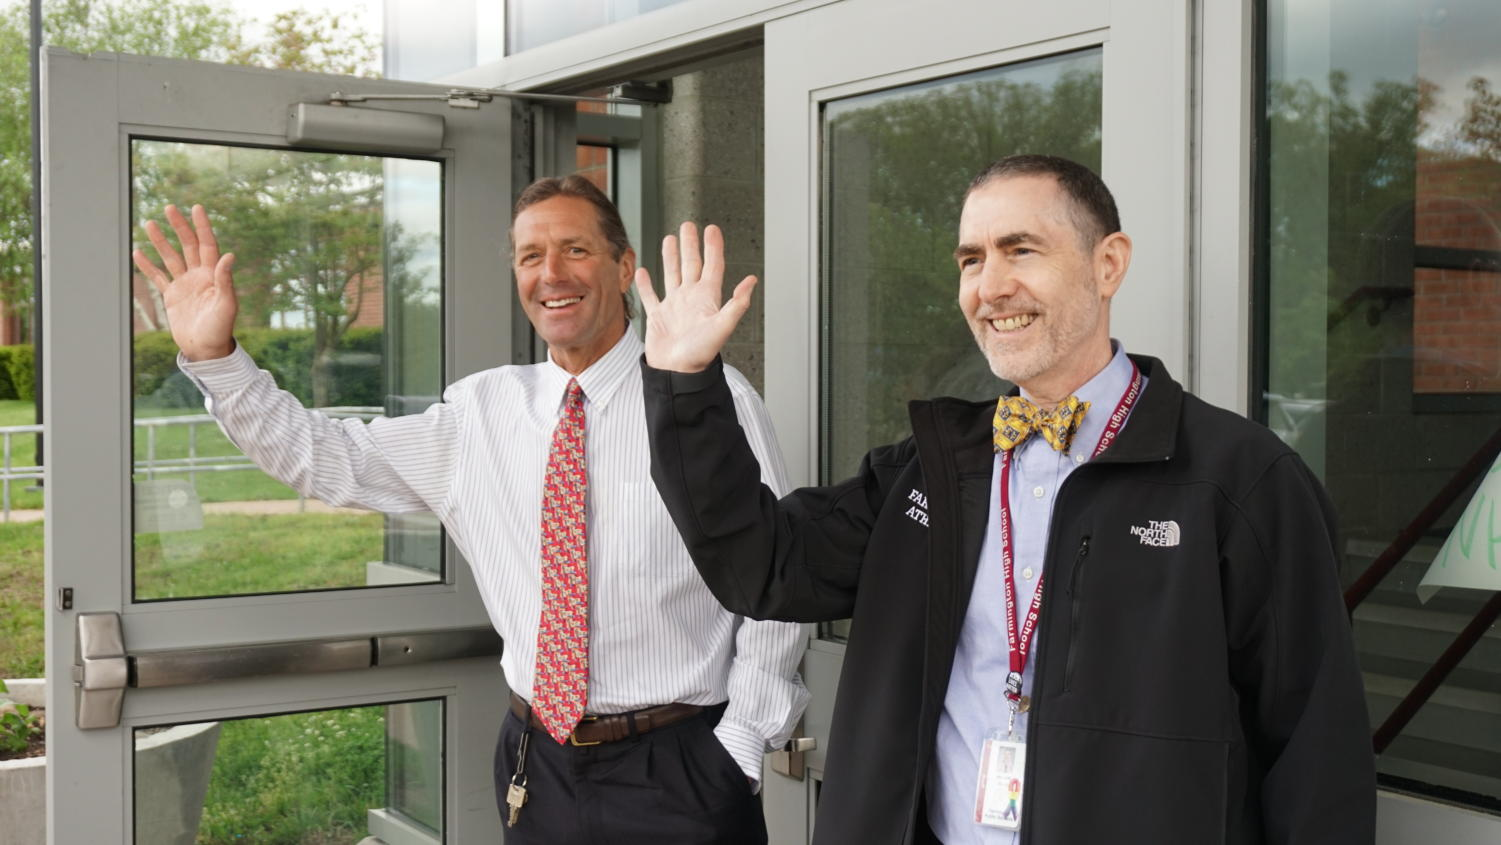 """You say 'goodbye' and I say 'hello'""-- (left to right) Assistant Principal Curt Pandiscio and Principal Bill Silva greet students, faculty, and staff in the morning outside the Student Entrance of the high school. Both Pandiscio and Silva announced their retirement earlier this year."